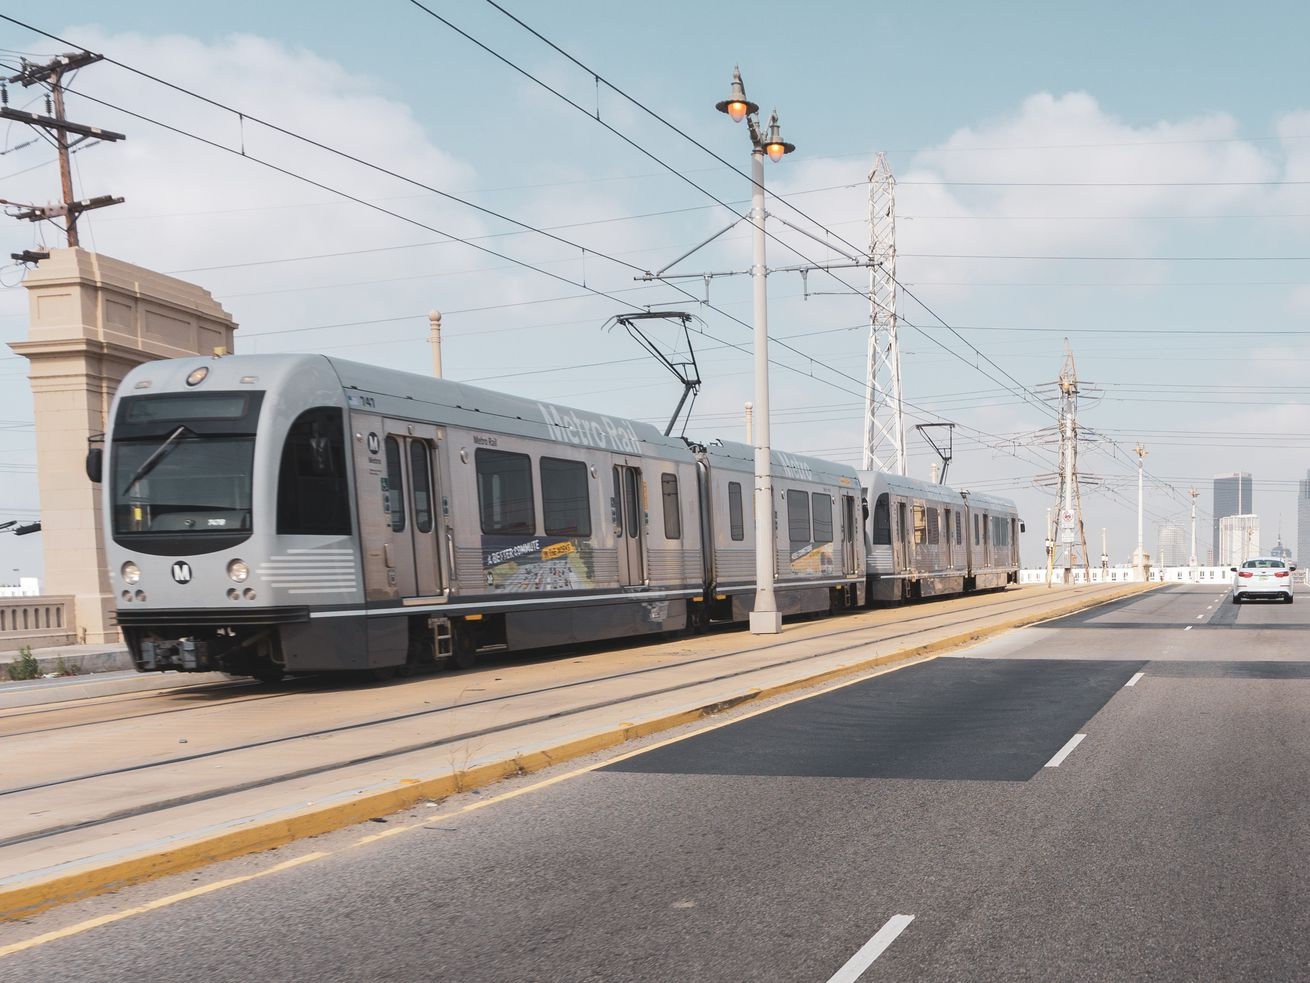 One project Metro aims to finish by 2028 is an extension of the southern leg of the Gold Line to Whittier.